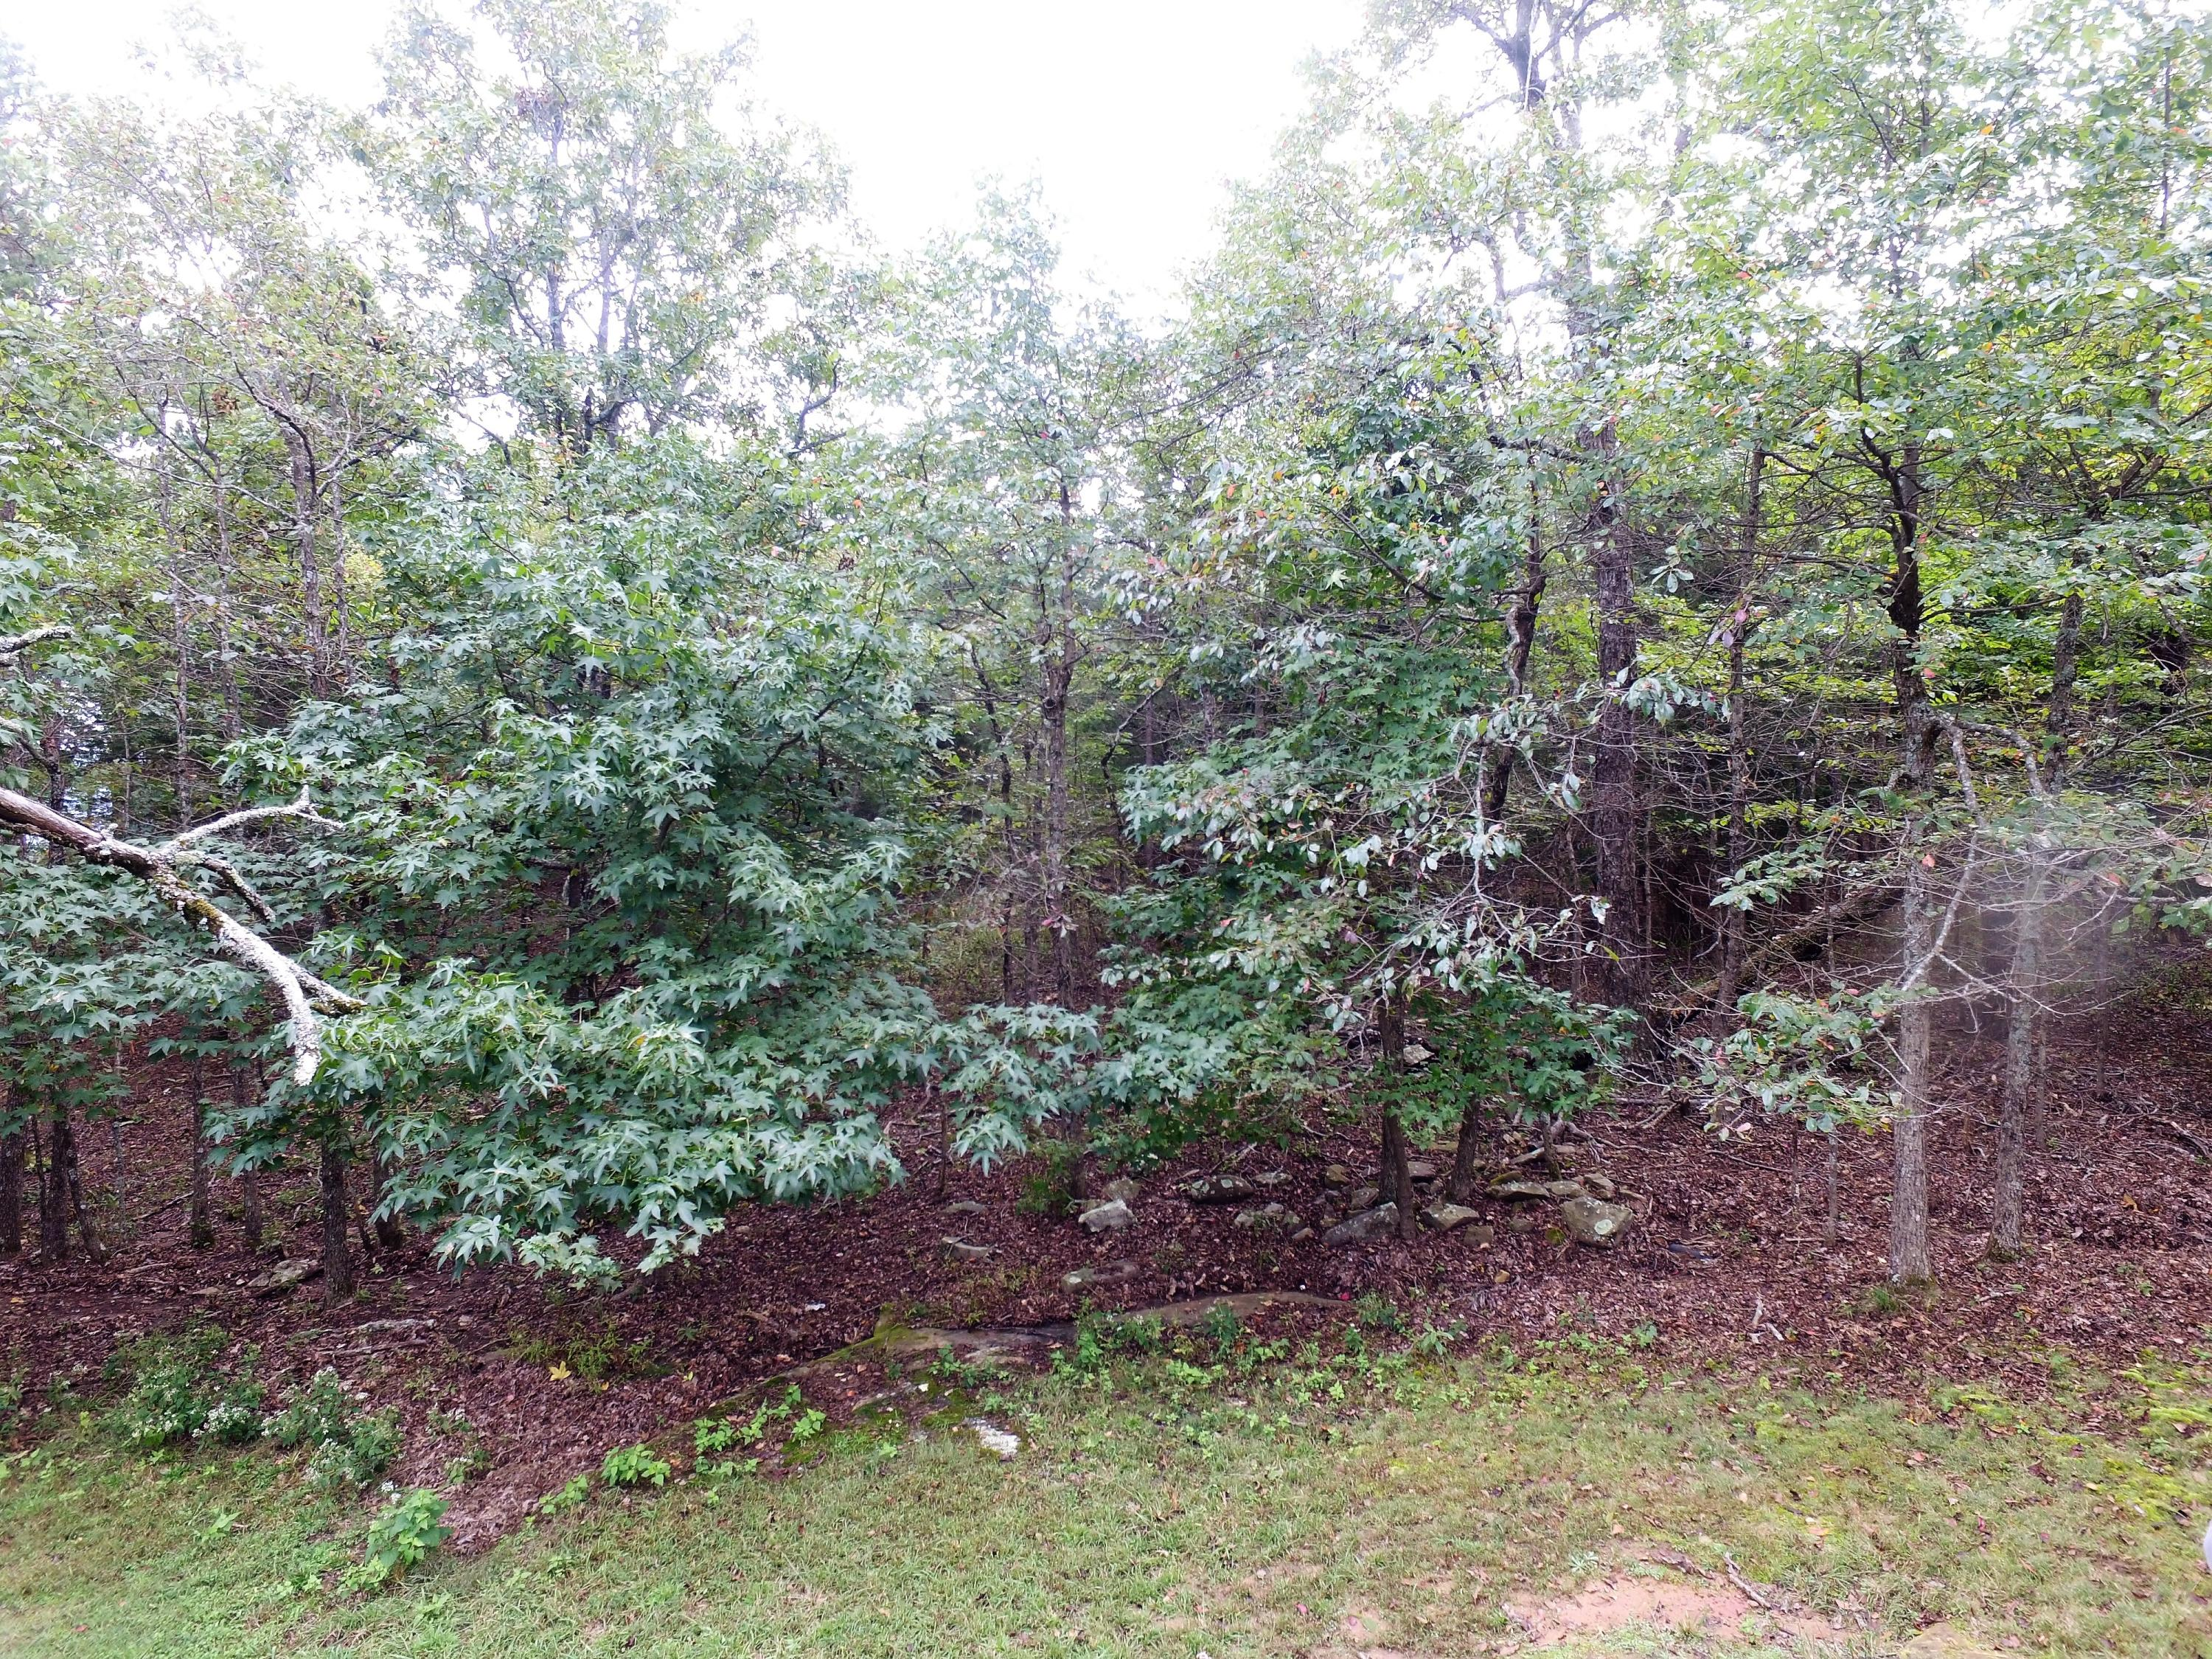 Large photo 13 of land for sale at  State 155 , Dardanelle, AR, listed by Moore And Co.